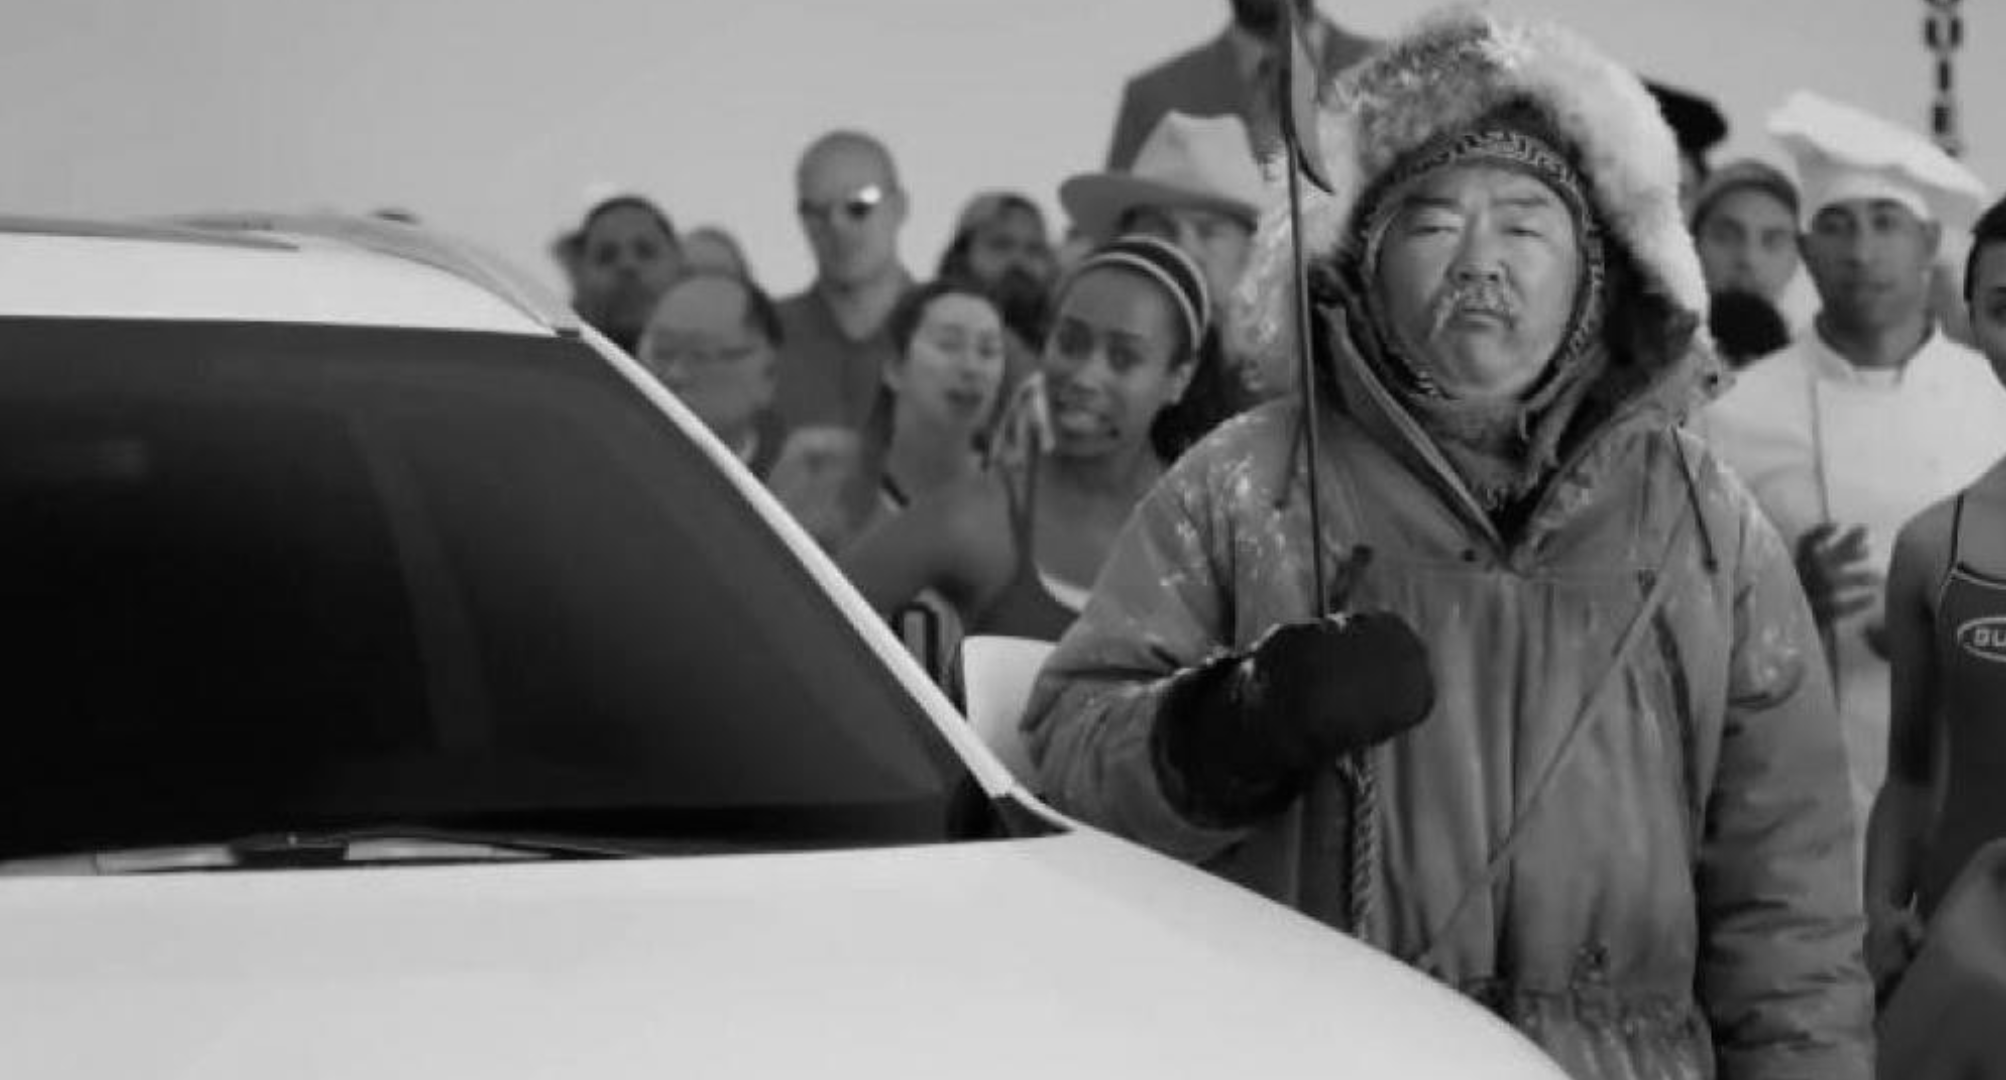 Mitsubishi's Super Bowl ad got it wrong